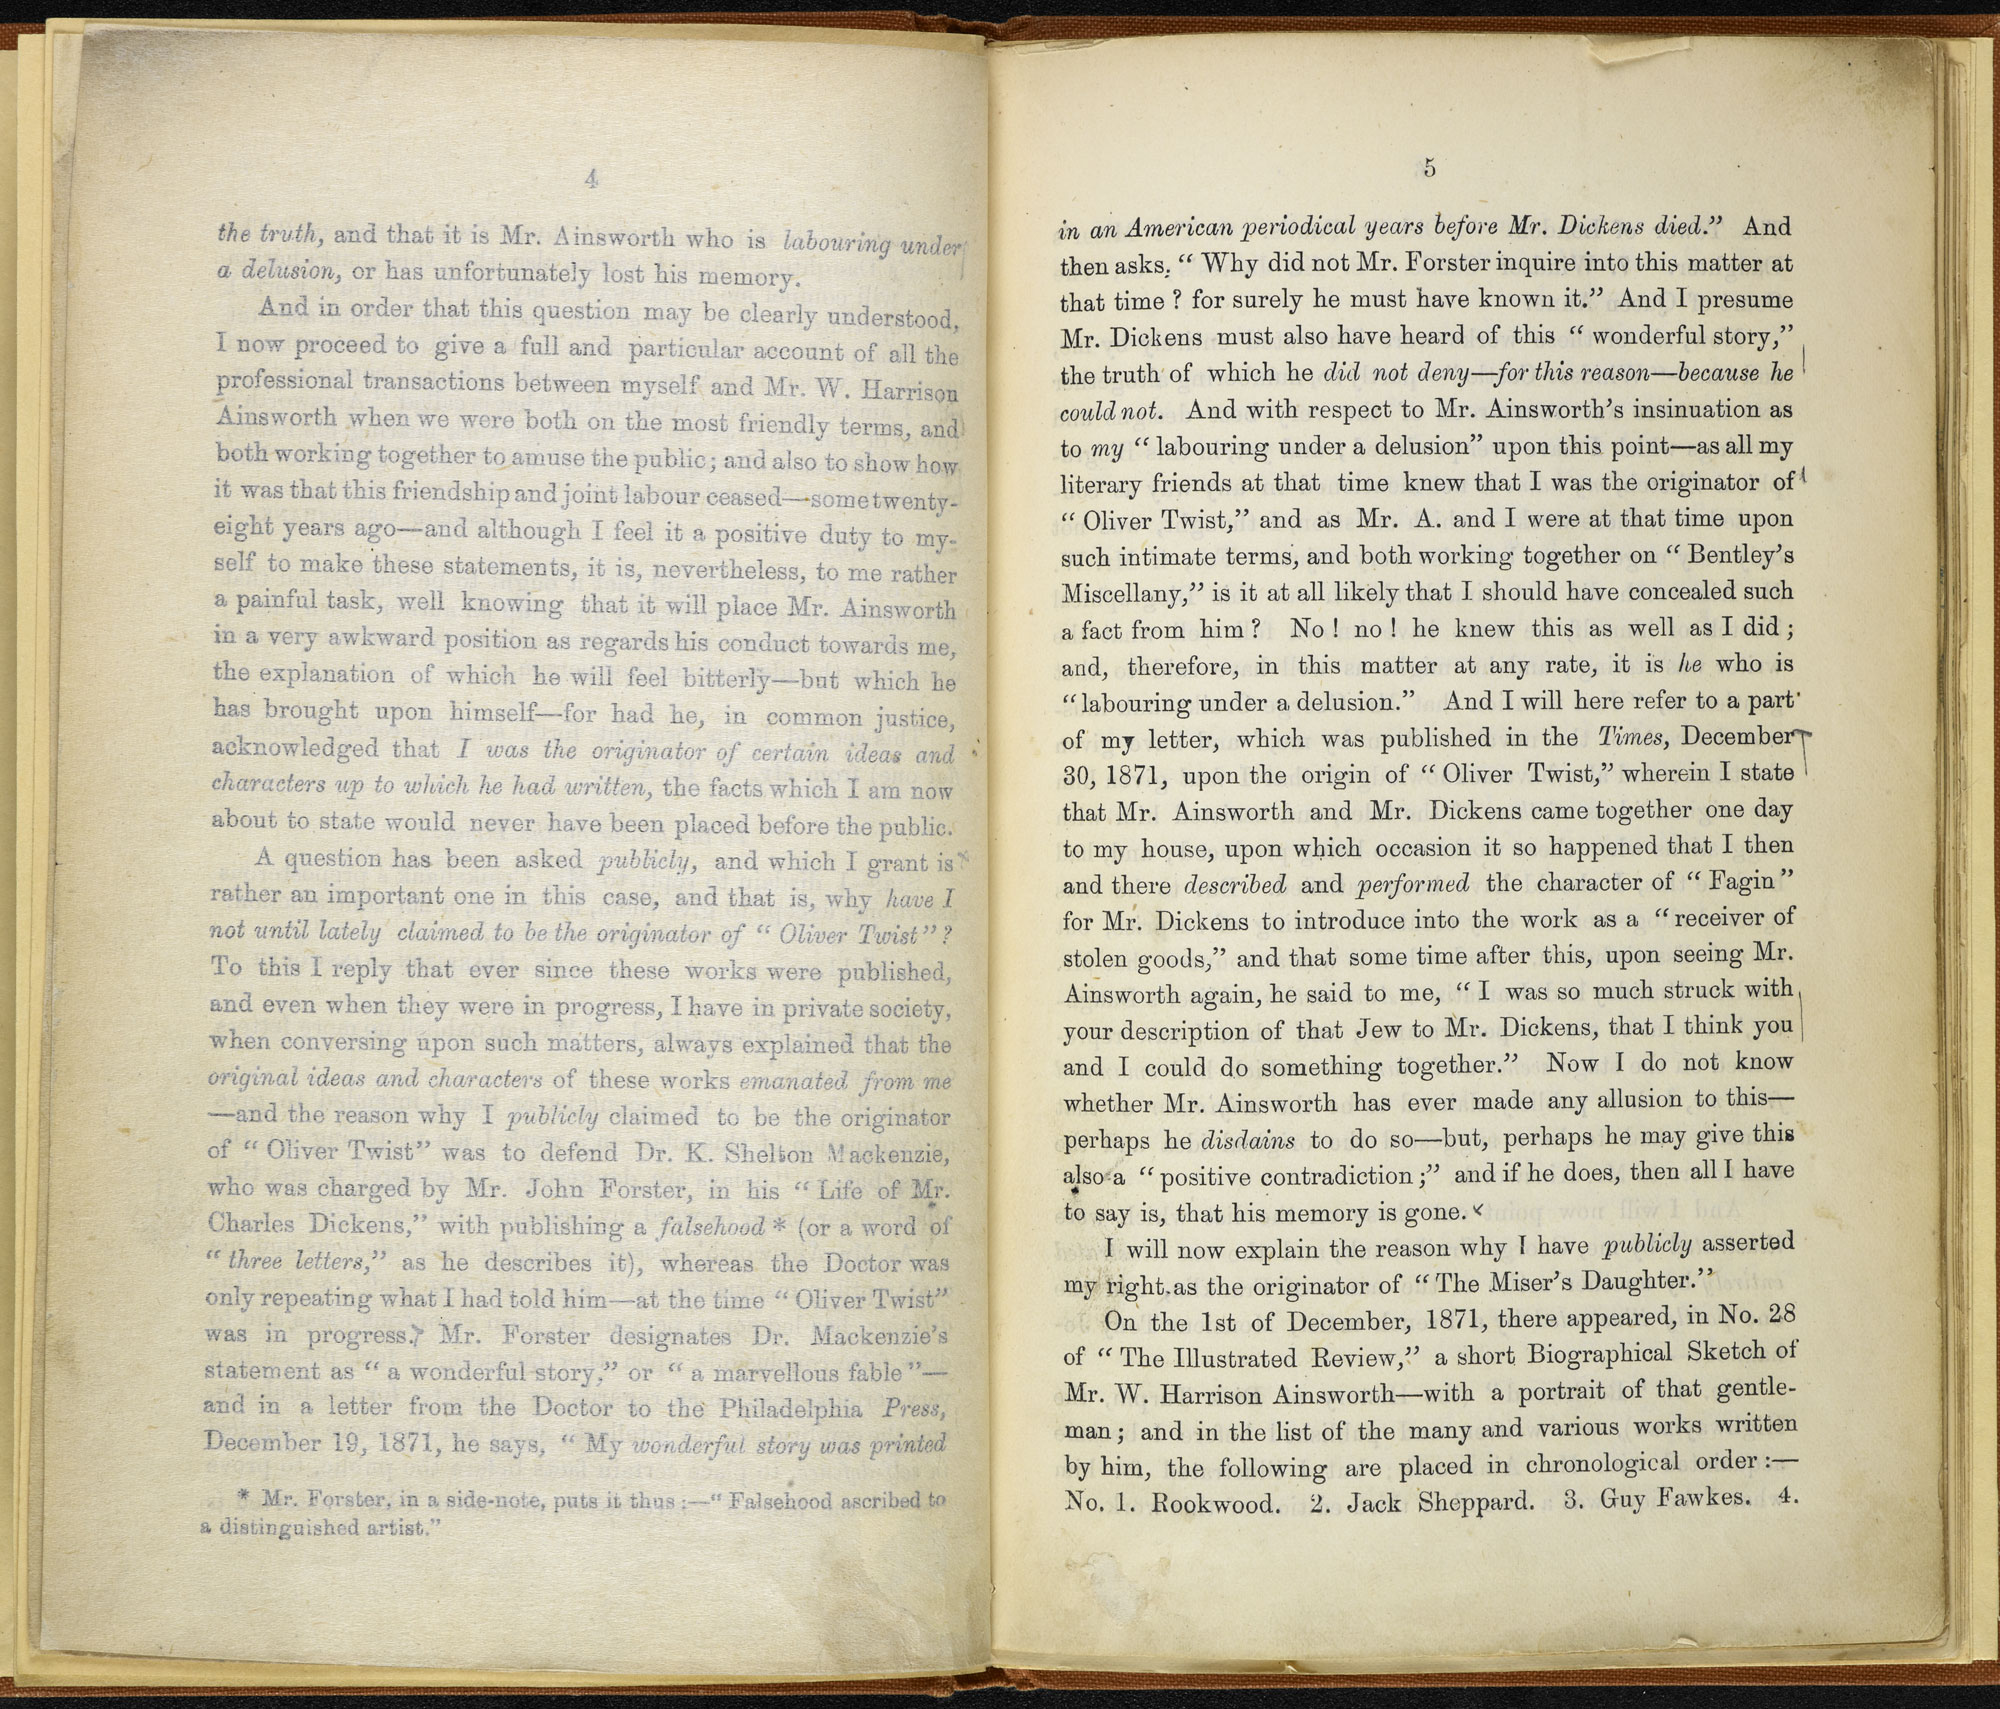 George Cruikshank's claims of plagiarism against Charles Dickens [page: 4-5]